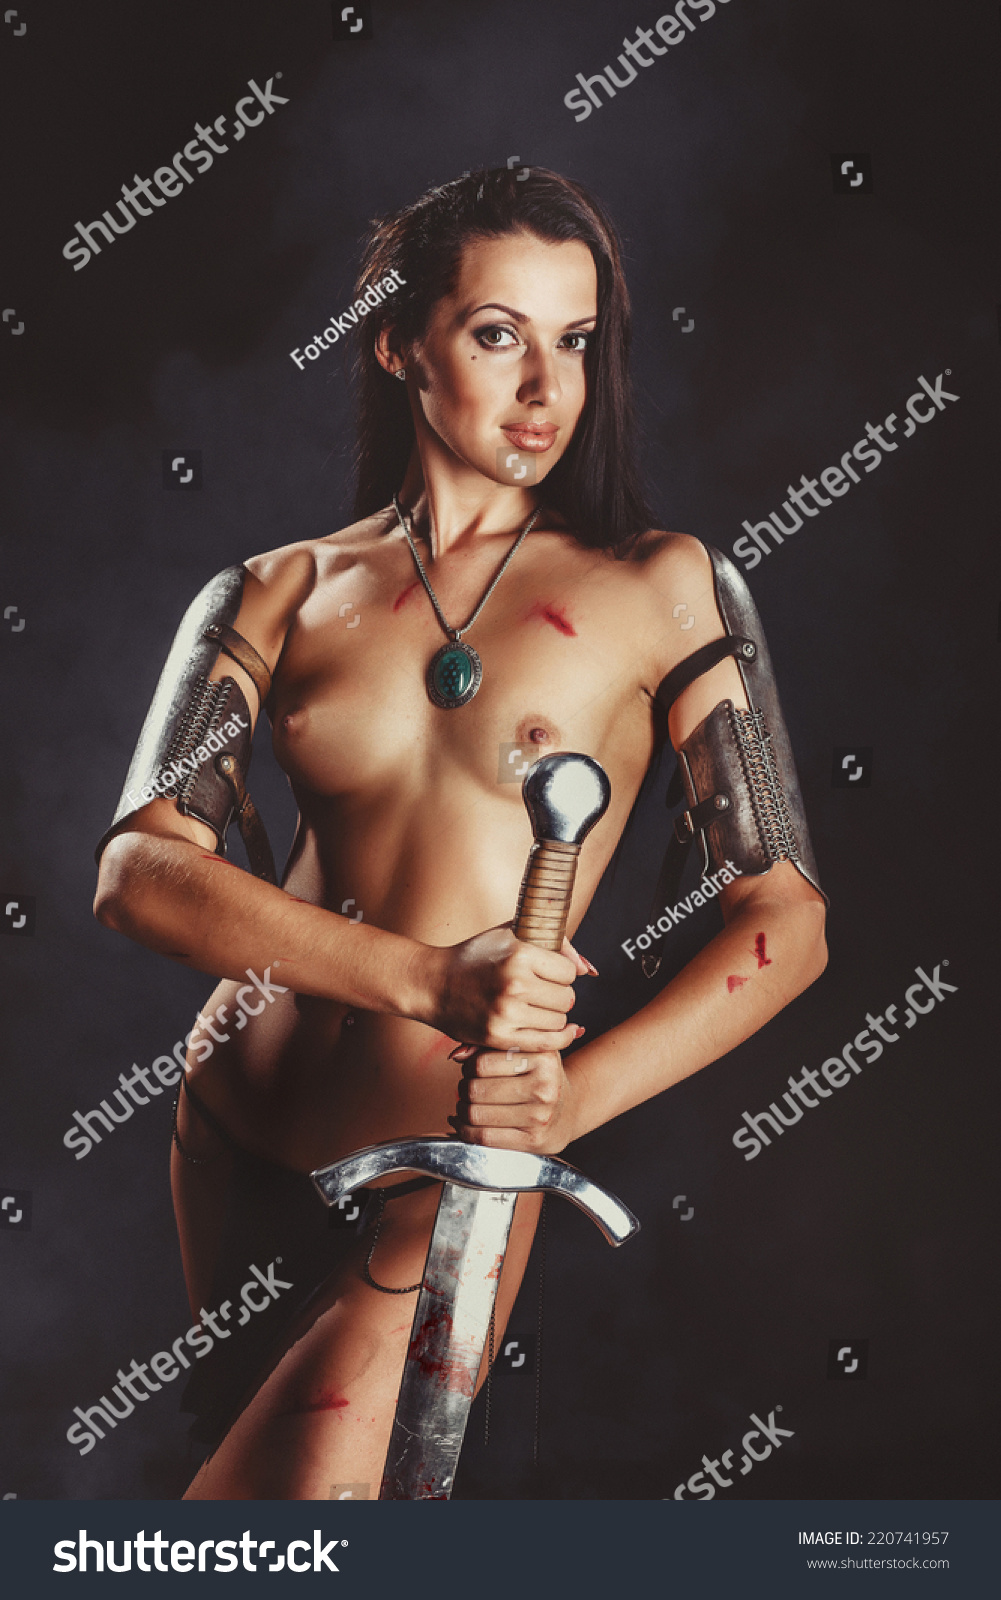 Naked women warriors and angels fantasy sexy image